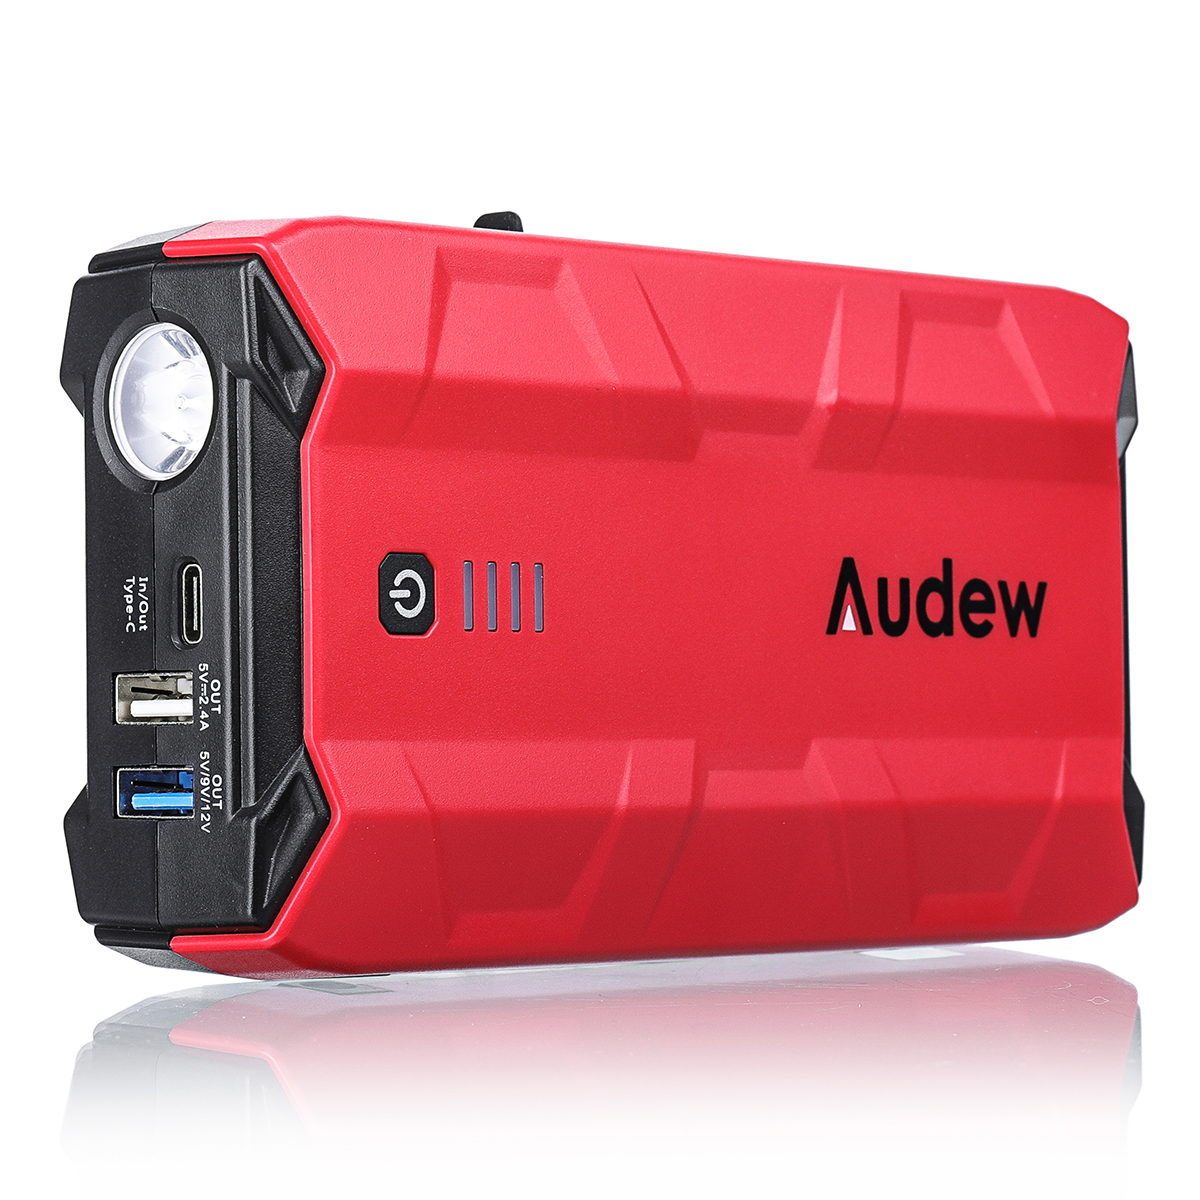 Audew 10800mAh Car Jump Starter, Peak Current 1000A